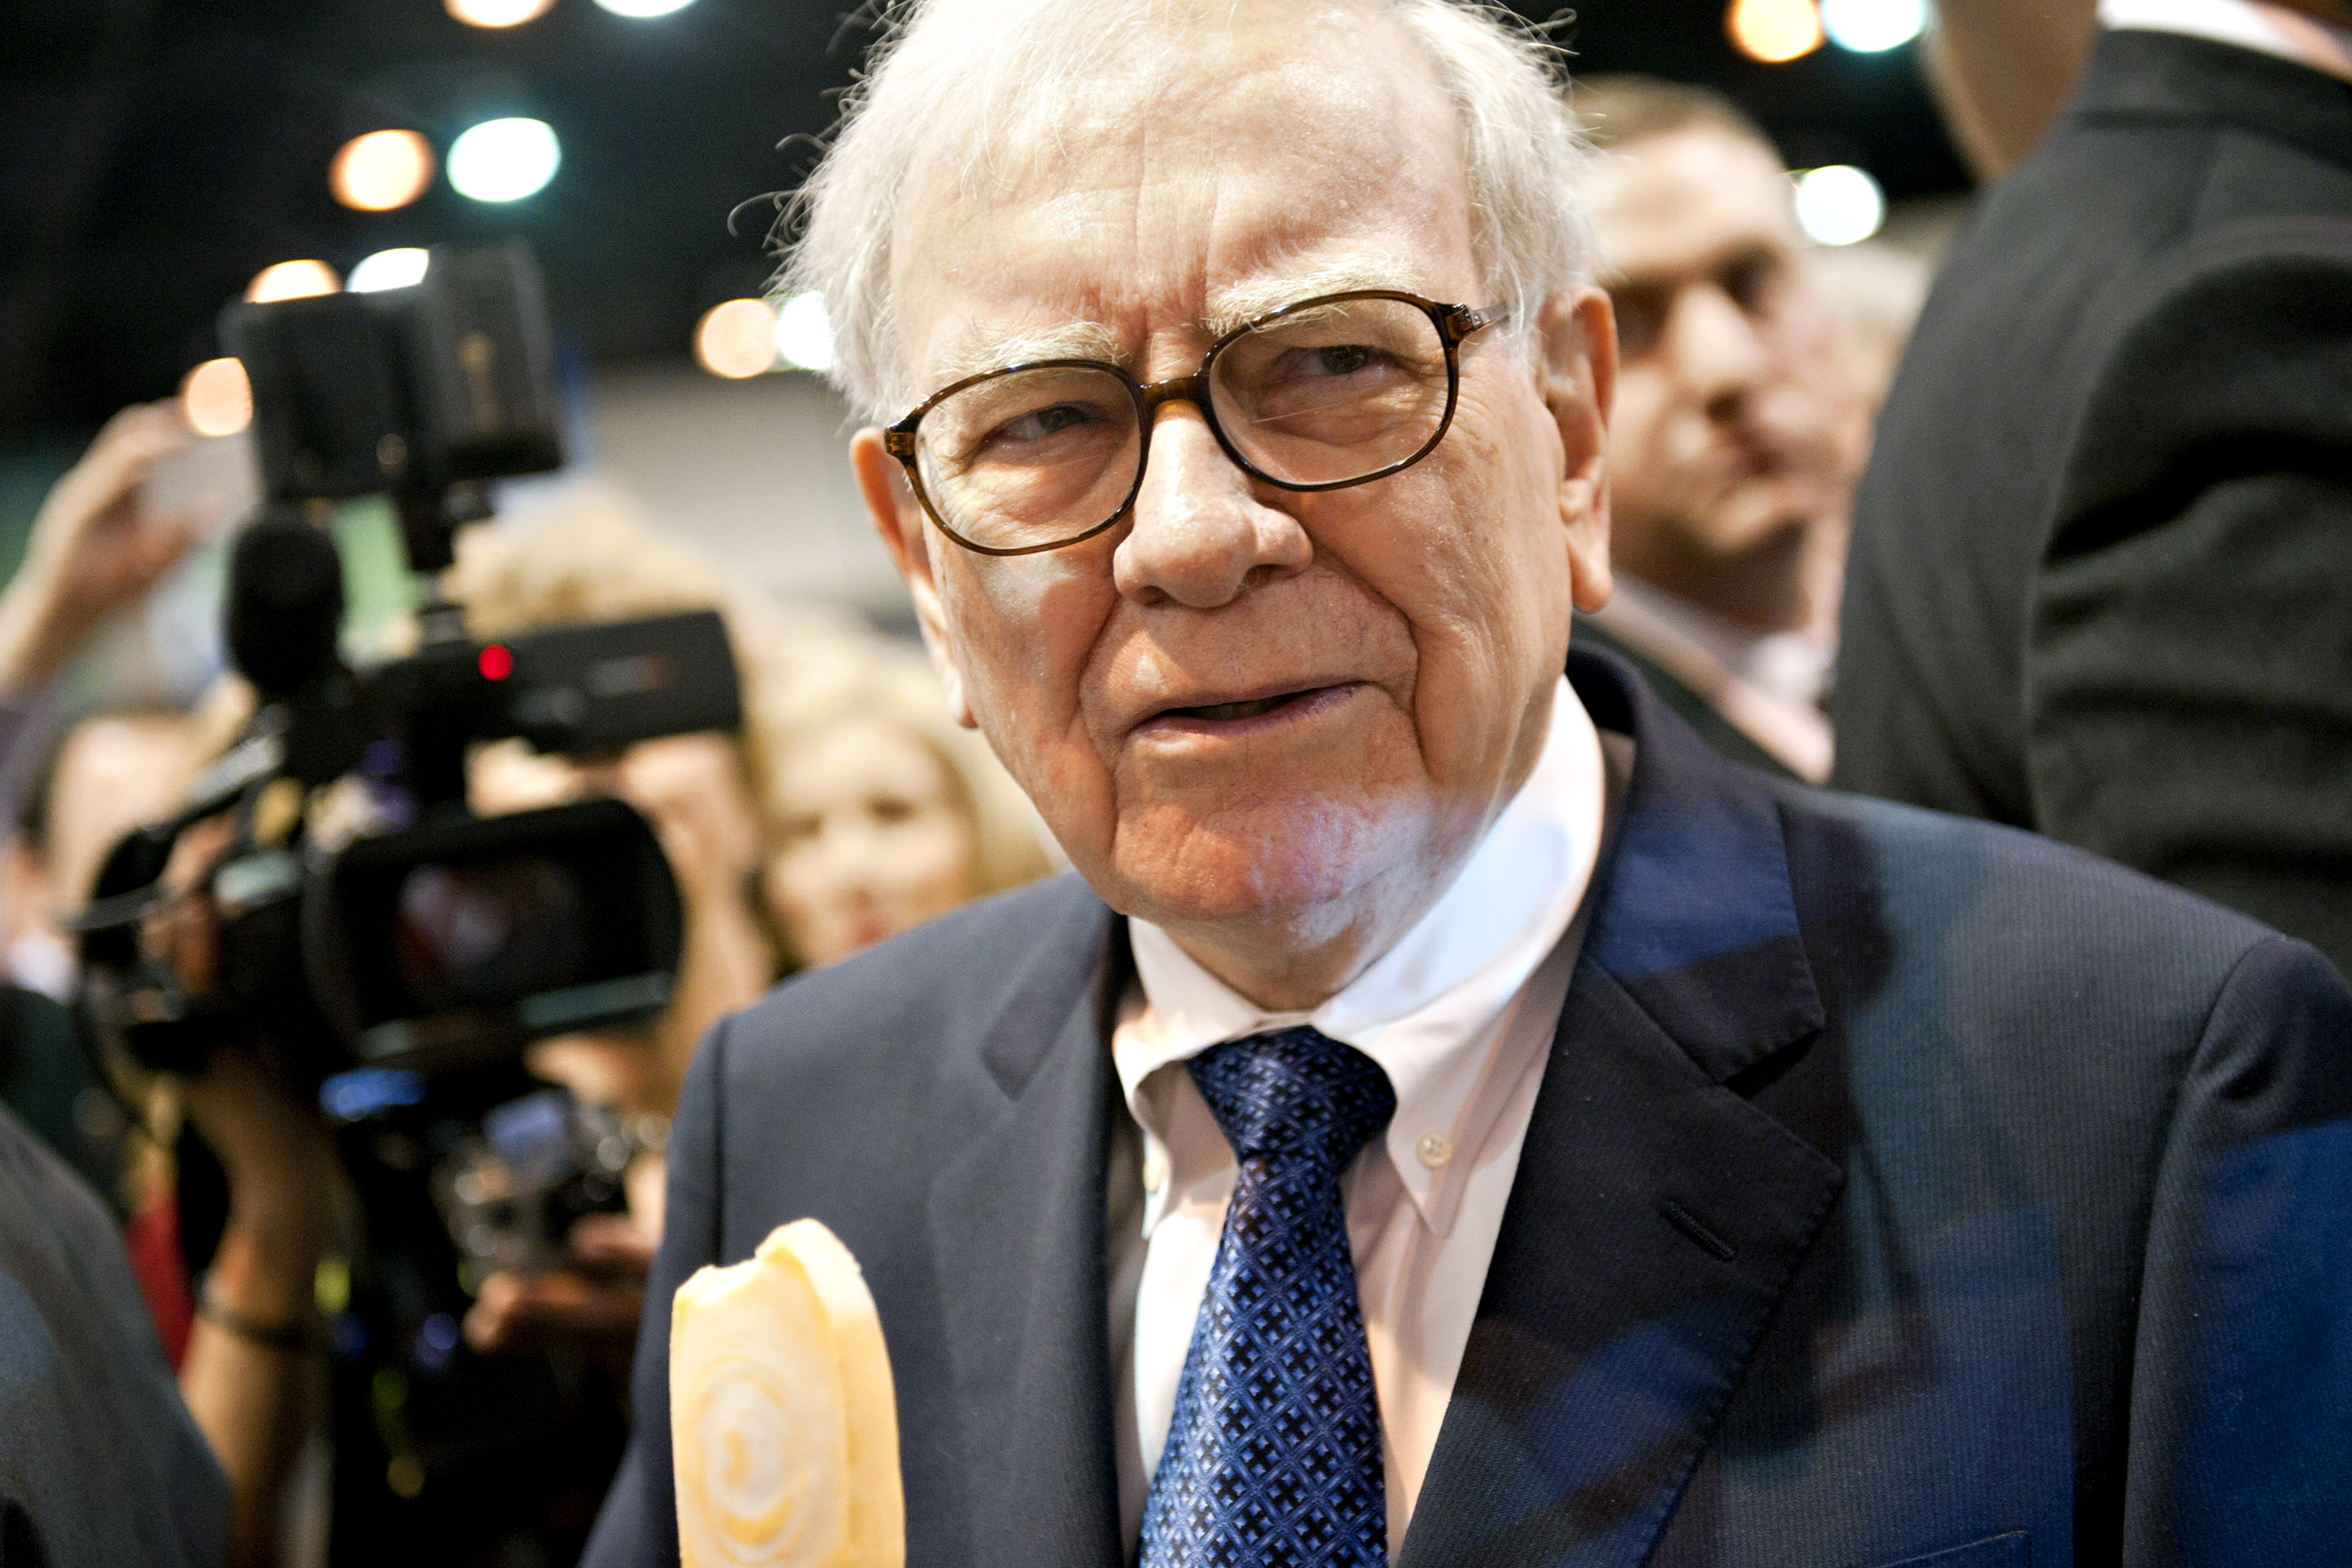 Anticipation: Warren Buffett's reputation as a hands-off owner made the deal go down easy with shareholders.